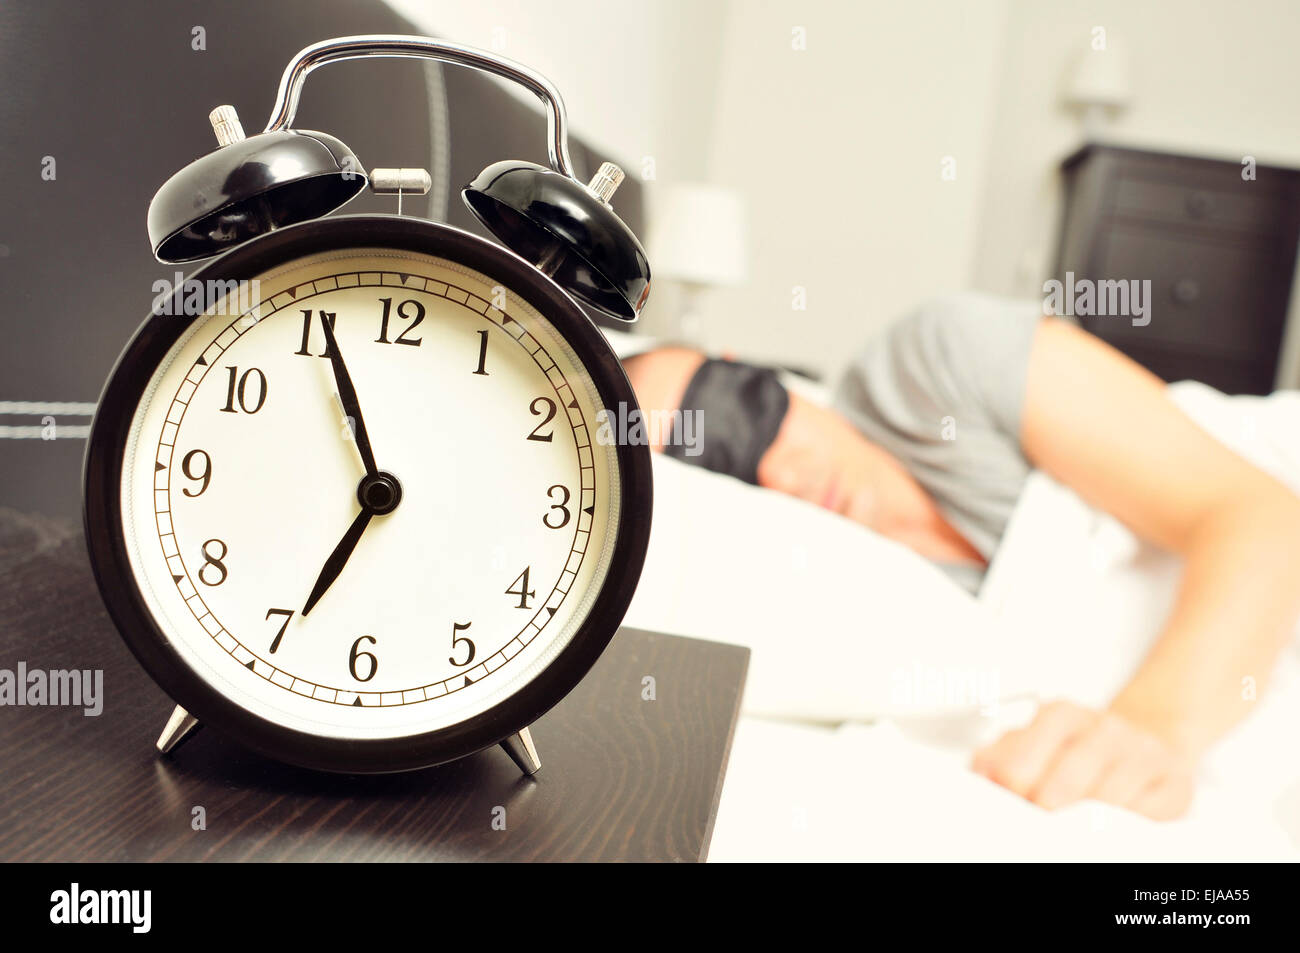 Closeup Of An Alarm Clock At 6 55 In The Morning On The Night Table And A Young Caucasian Man Sleeping In Bed With A Black Sleep